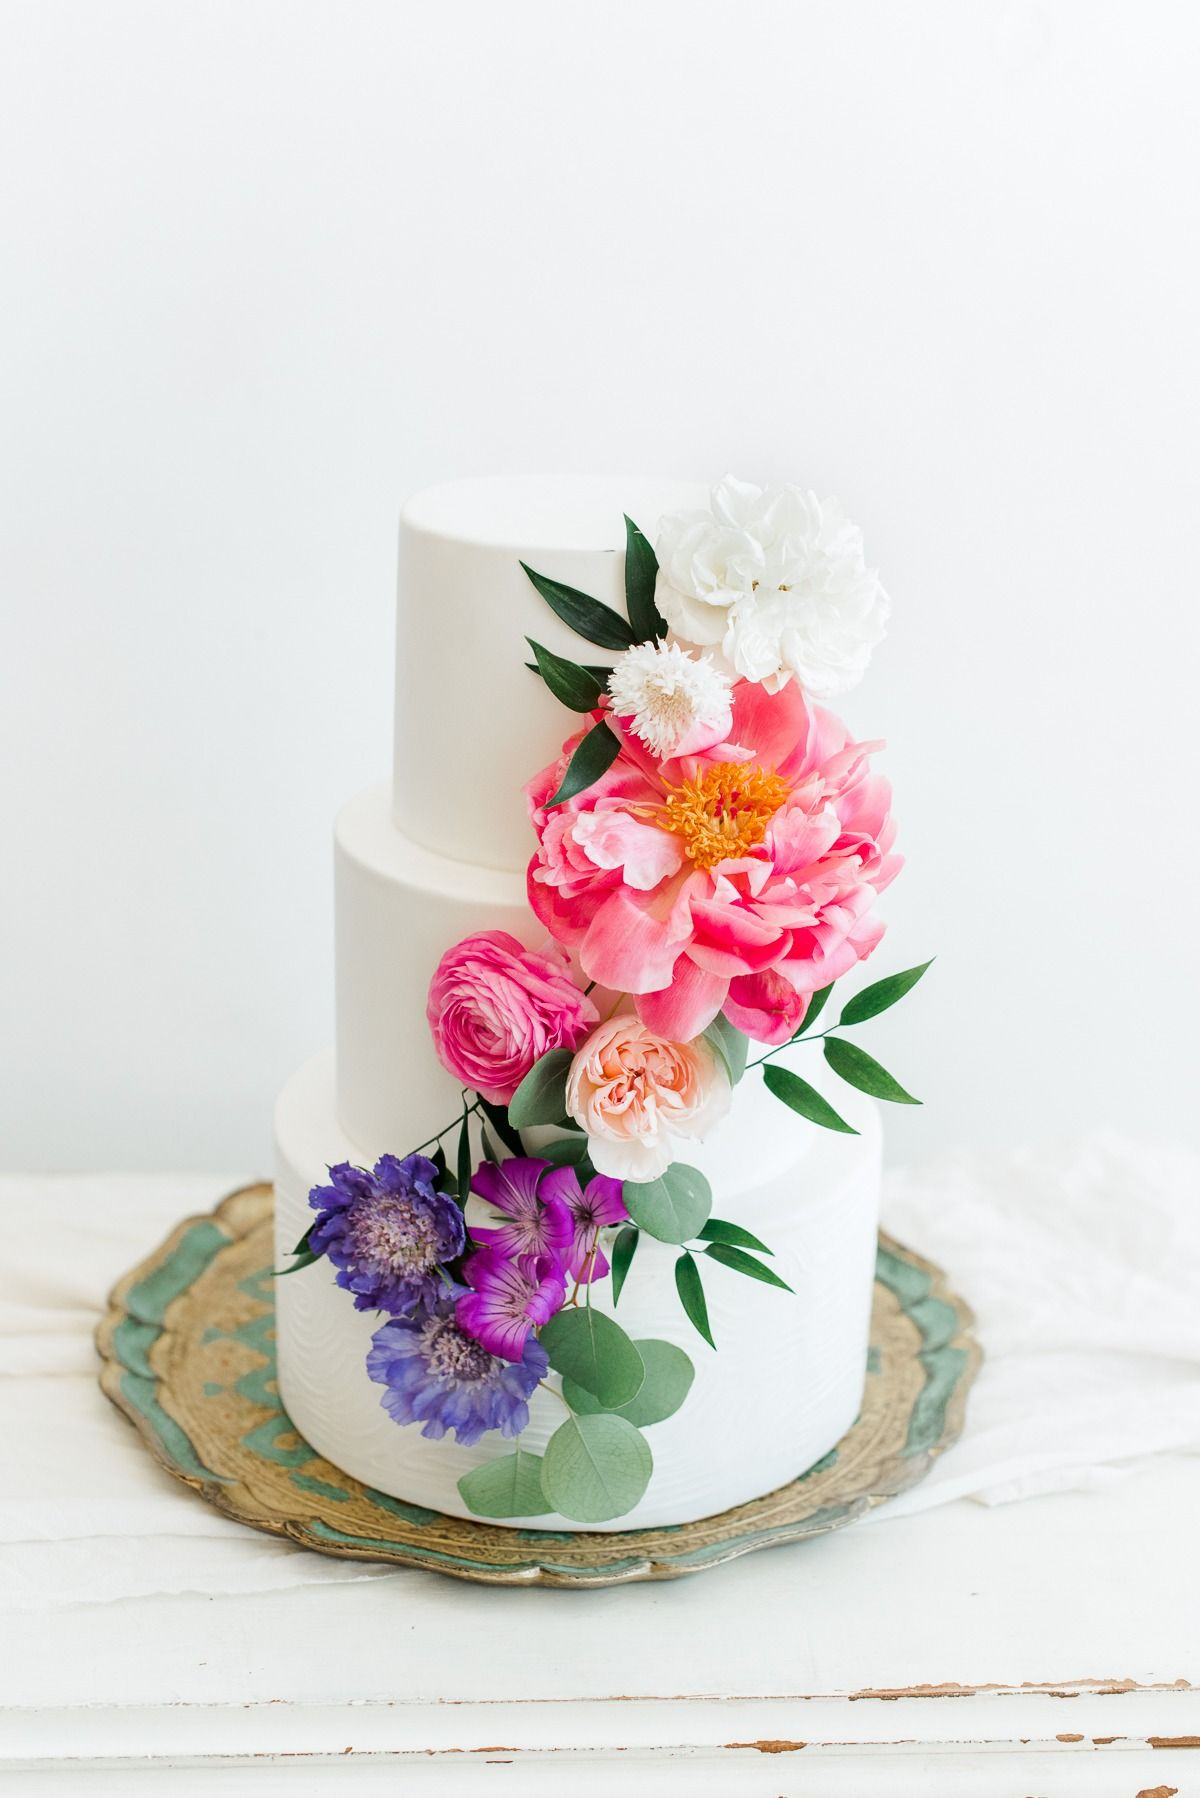 Monet S Multi Colored Garden Wedding Inspiration For Spring Garden Wedding Inspiration Wedding Cakes With Flowers Wedding Cakes